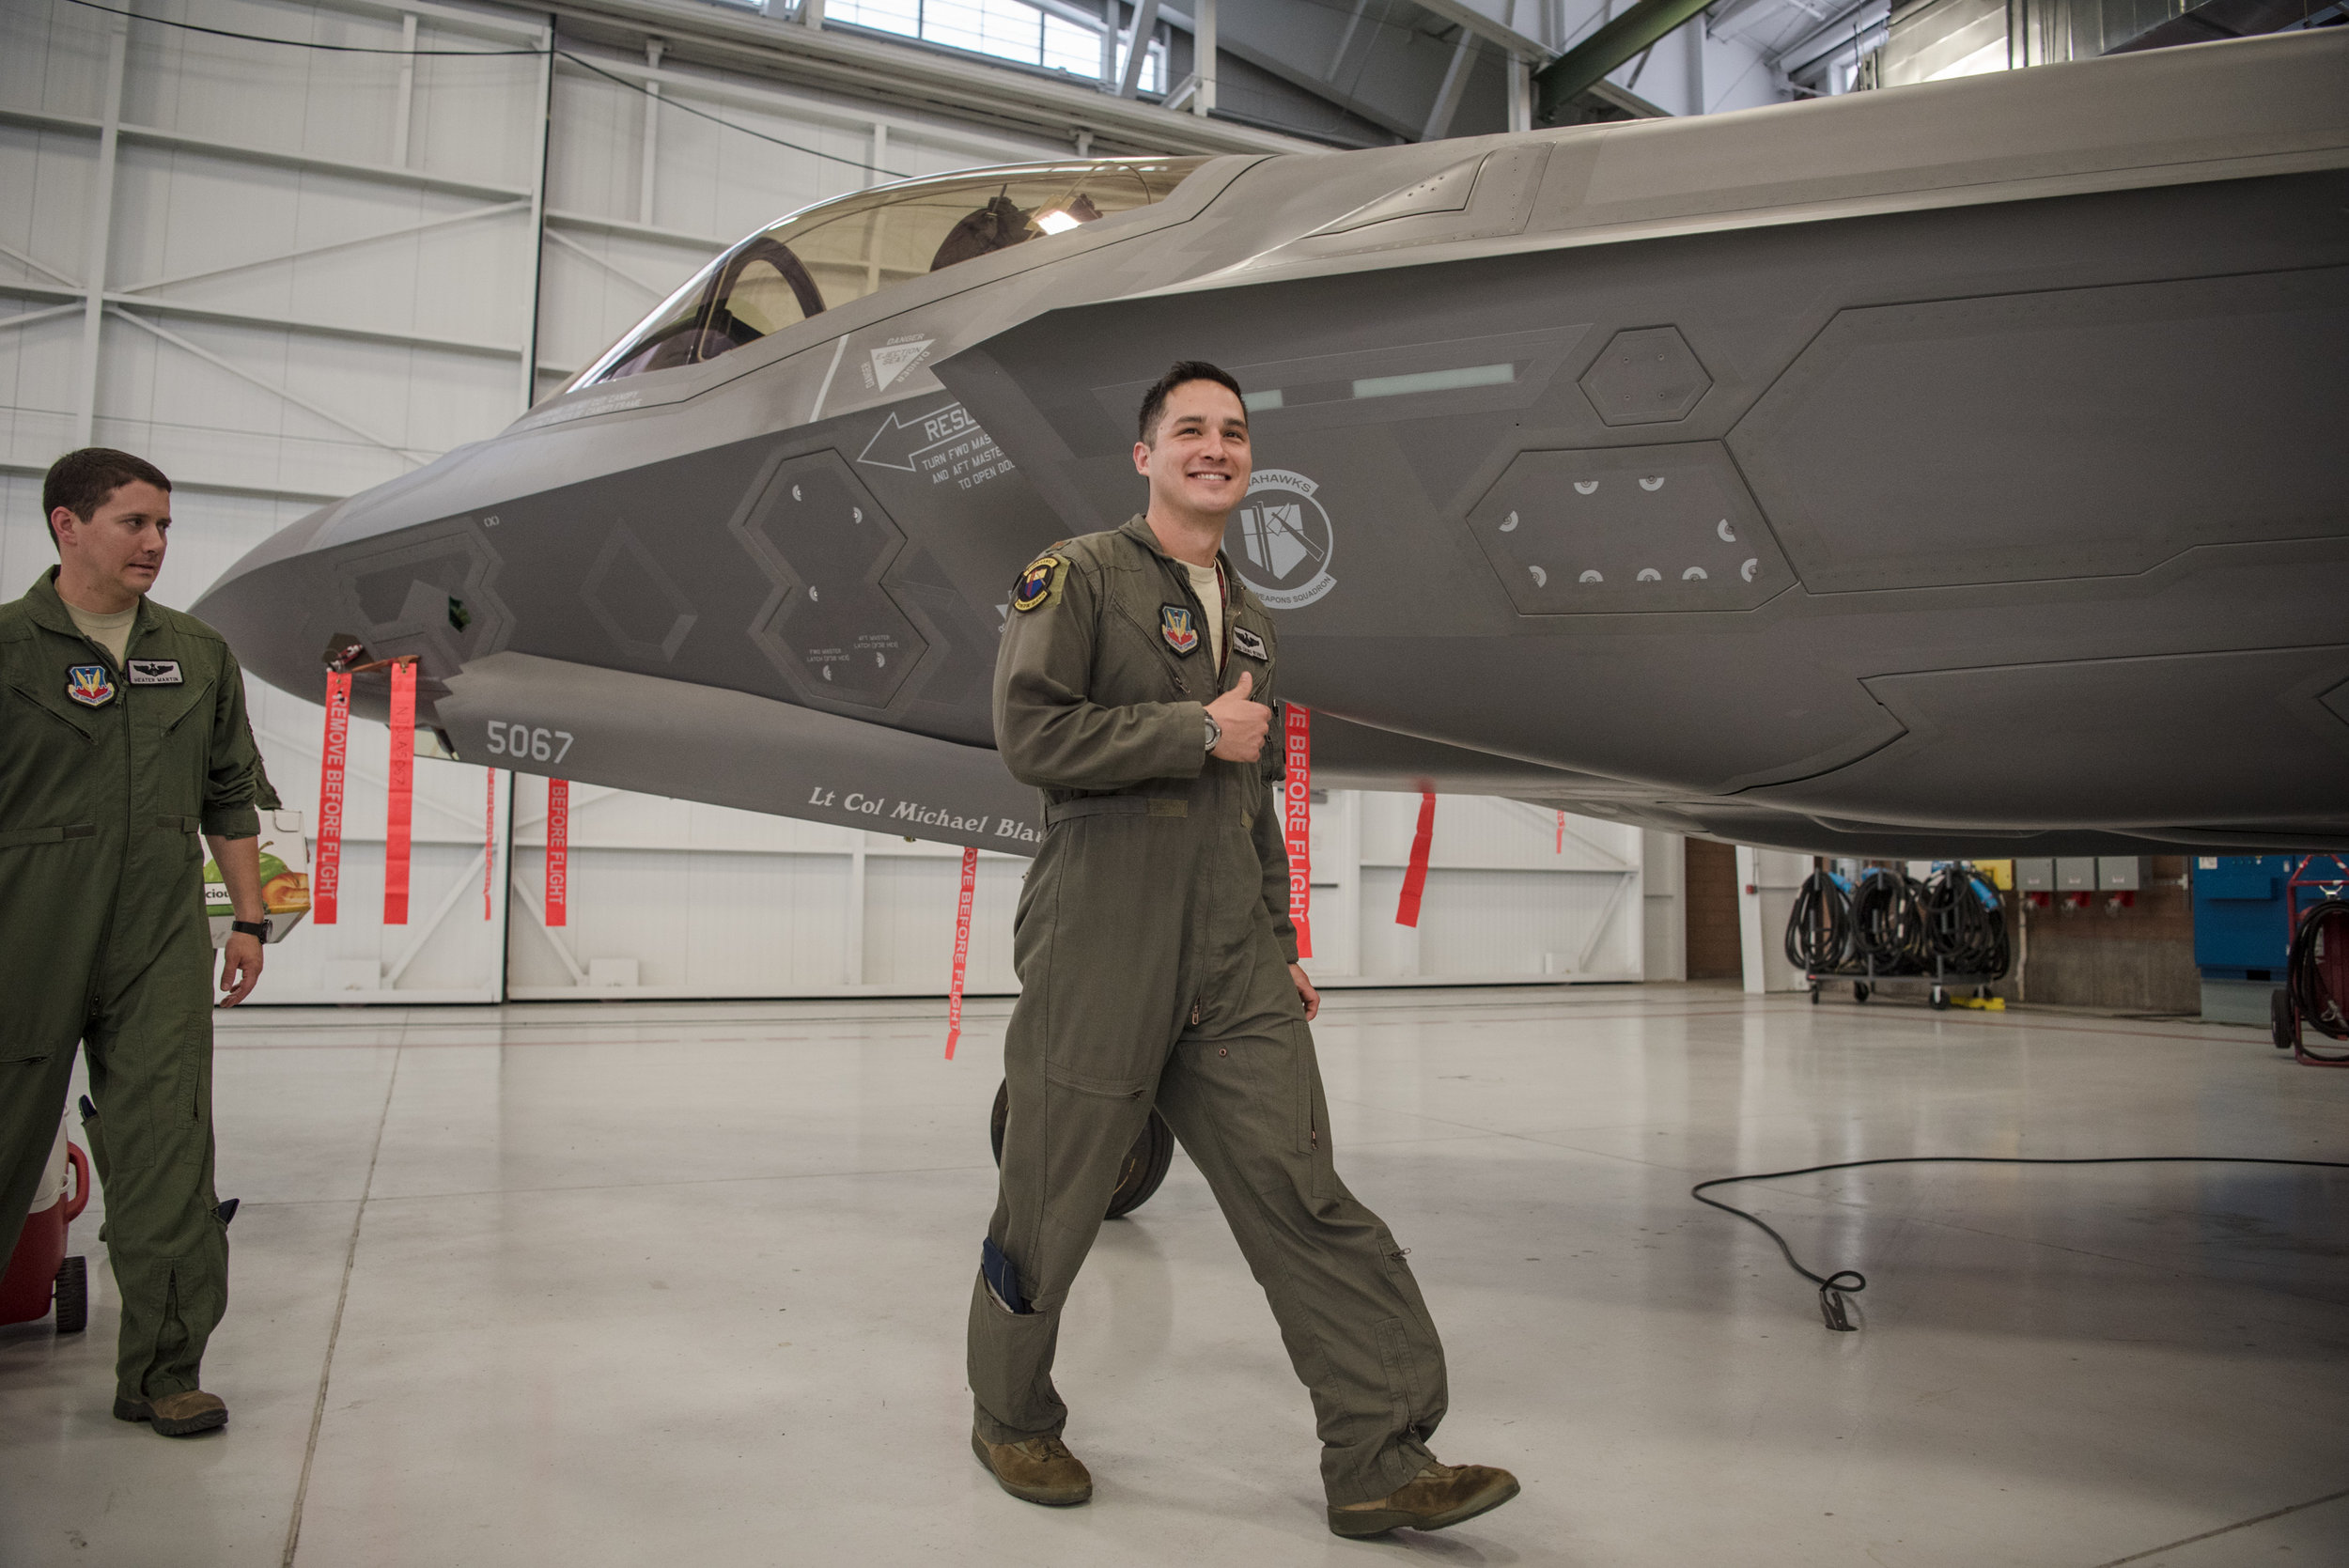 Wang Chung-Werner showing a smile at Nellis Air Force Base after an activation ceremony of an F-35A Lightning II joint strike fighter jet on Tuesday, June 21, 2017, in Las Vegas. Morgan Lieberman Las Vegas Review-Journal